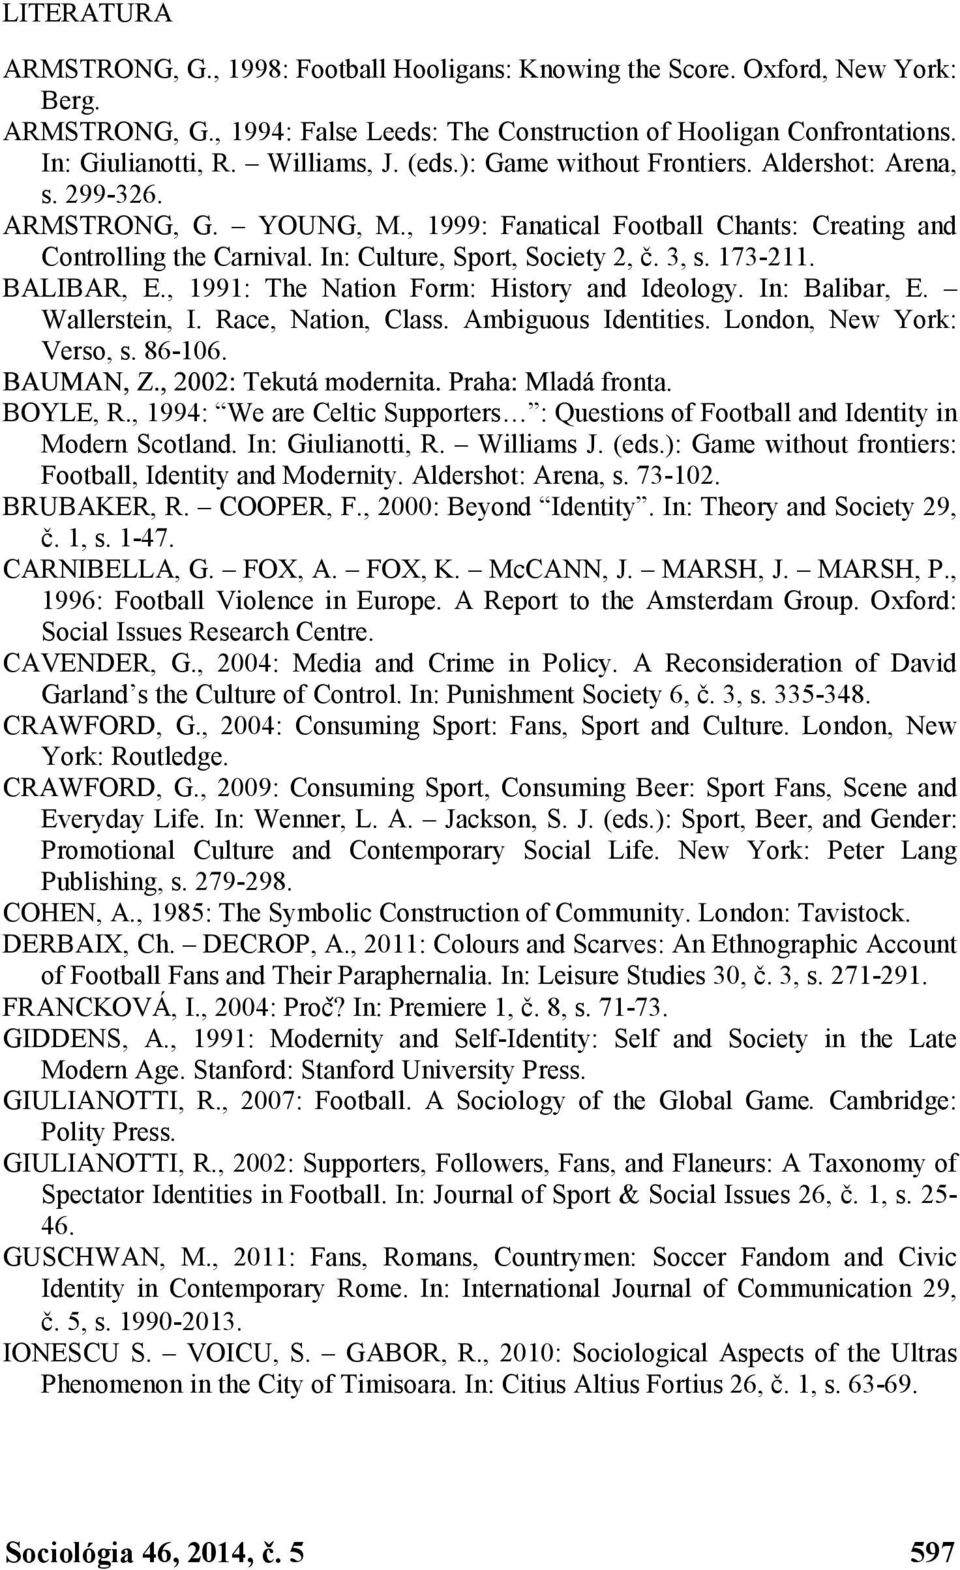 In: Culture, Sport, Society 2, č. 3, s. 173-211. BALIBAR, E., 1991: The Nation Form: History and Ideology. In: Balibar, E. Wallerstein, I. Race, Nation, Class. Ambiguous Identities.